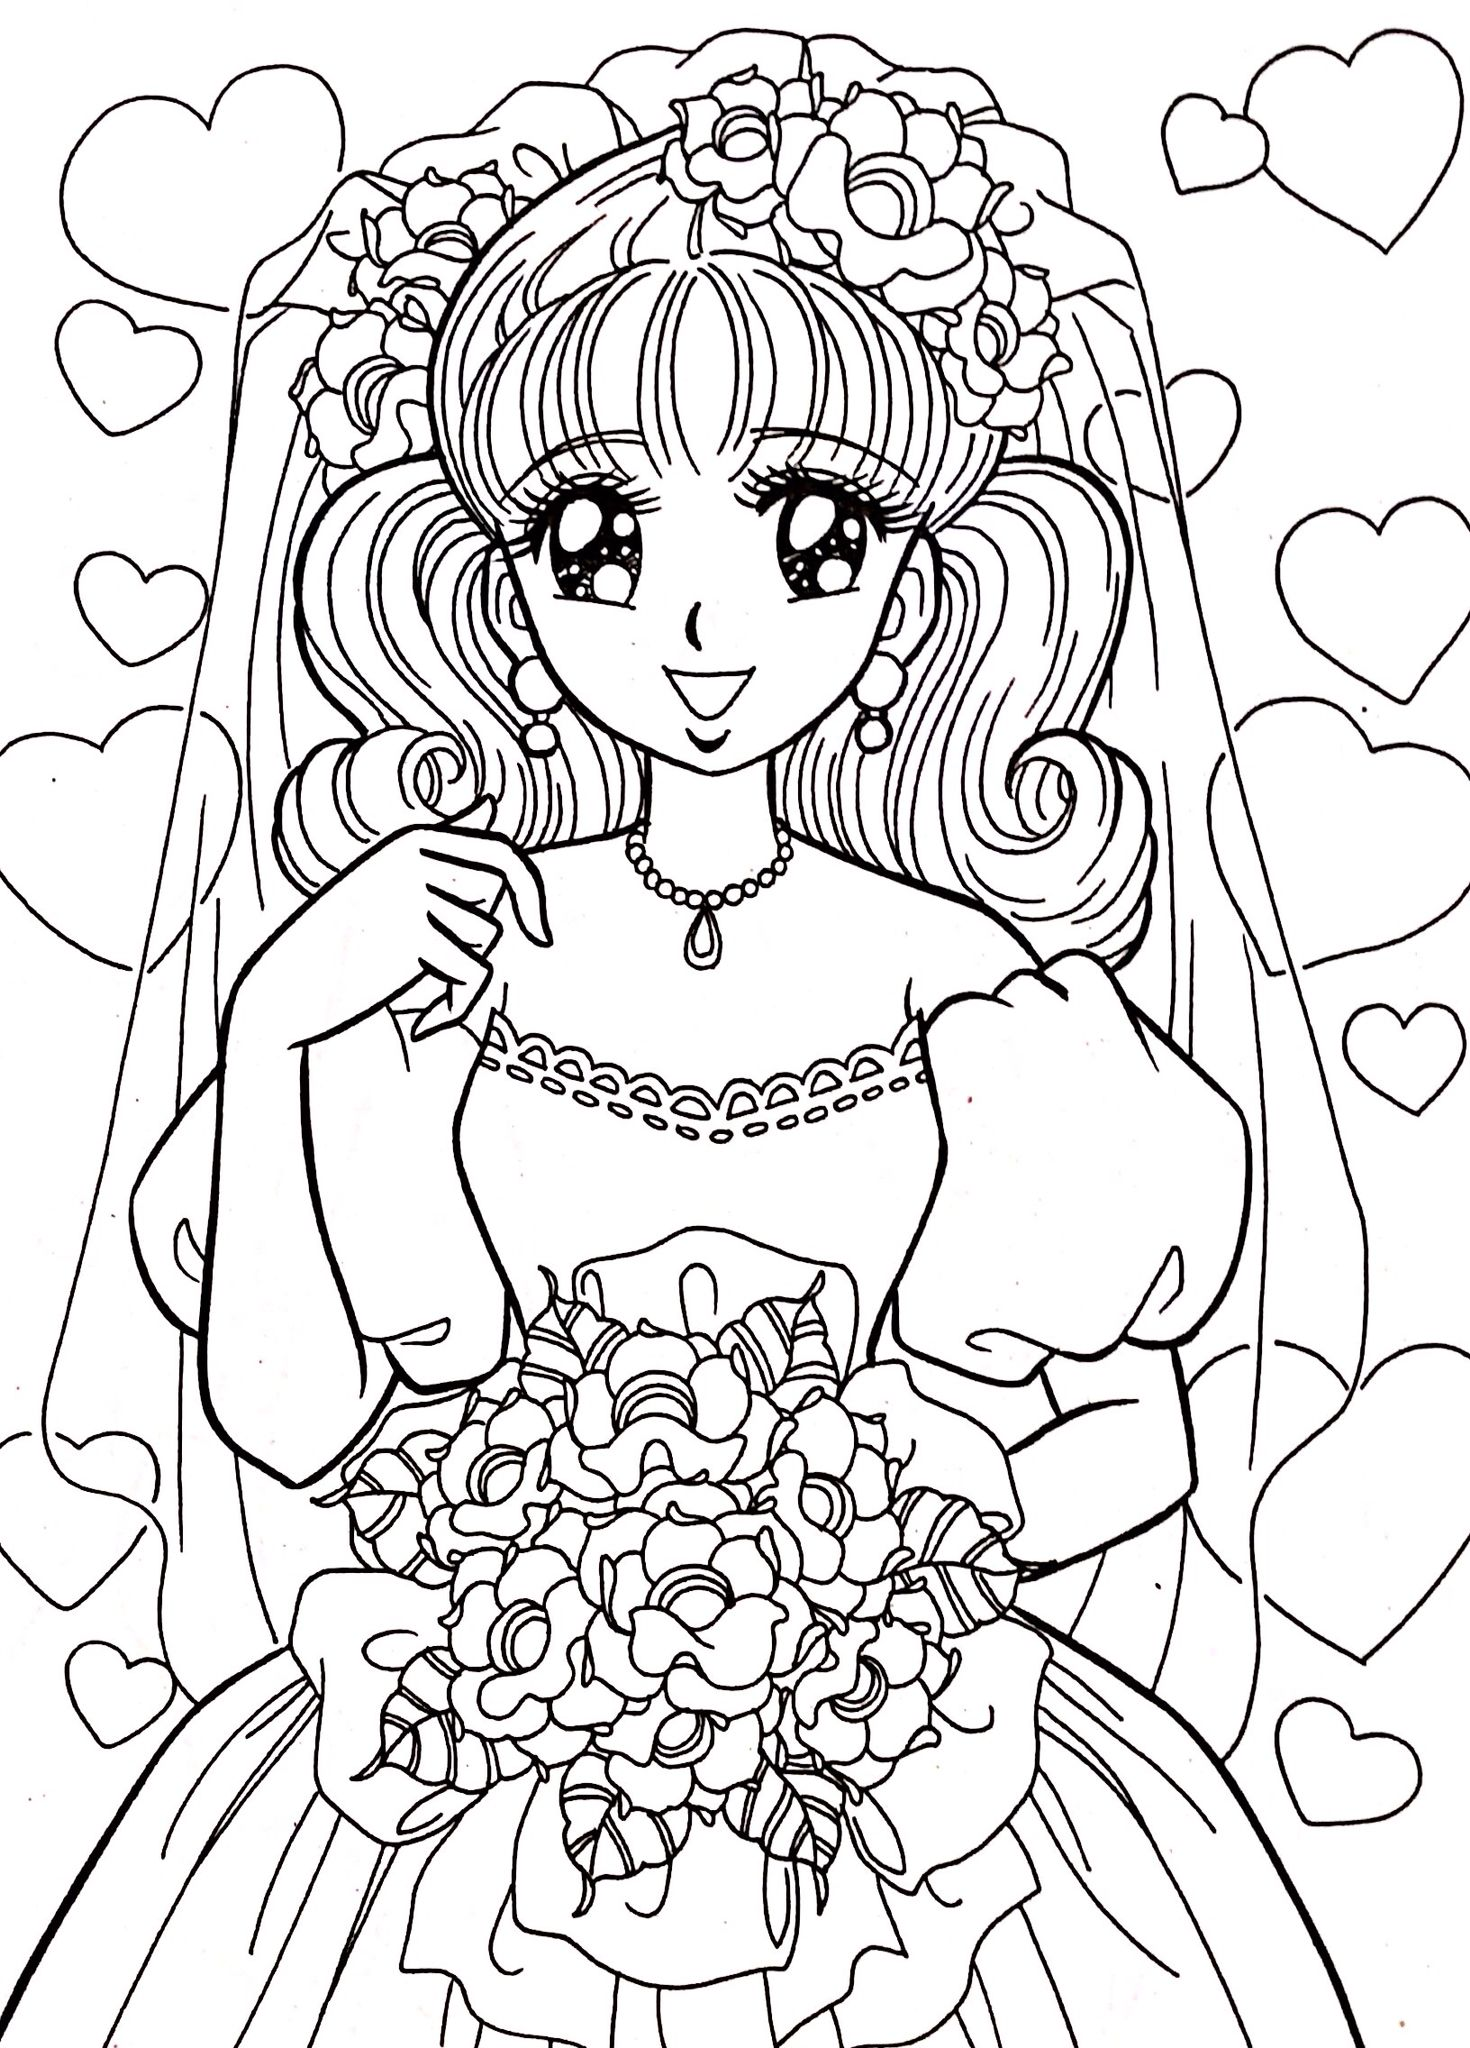 Coloring Sailor moon coloring pages, Coloring books